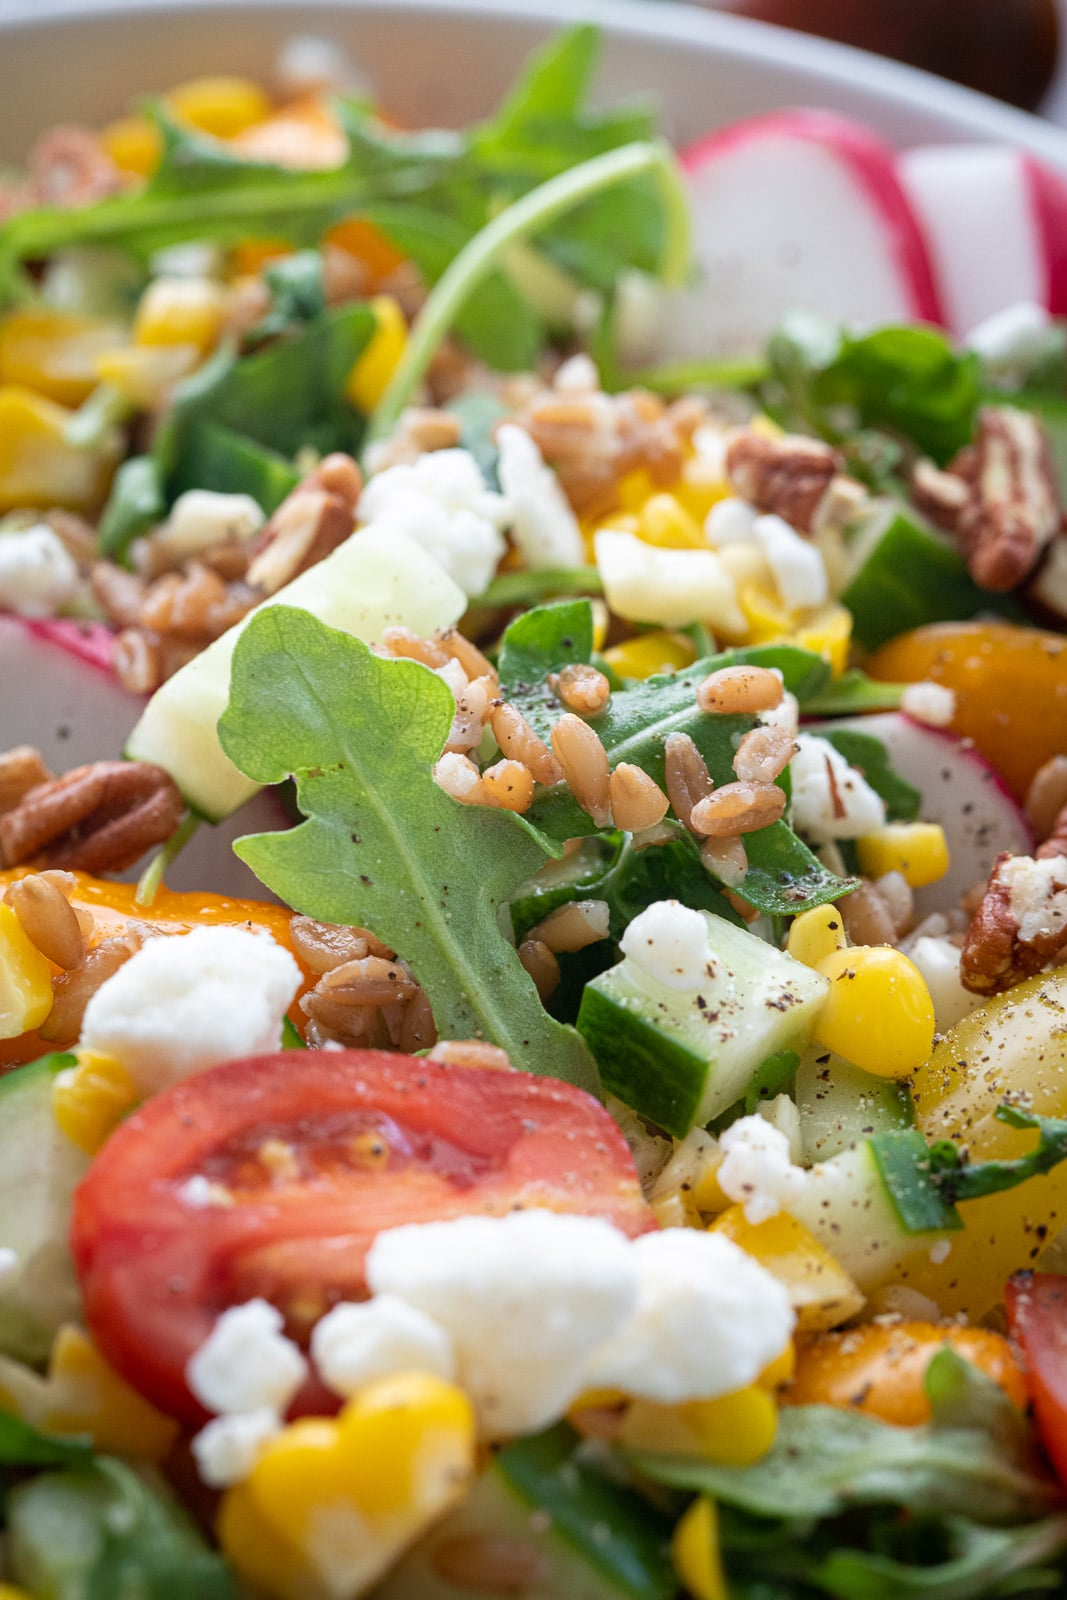 Ancient grain and vegetable salad.